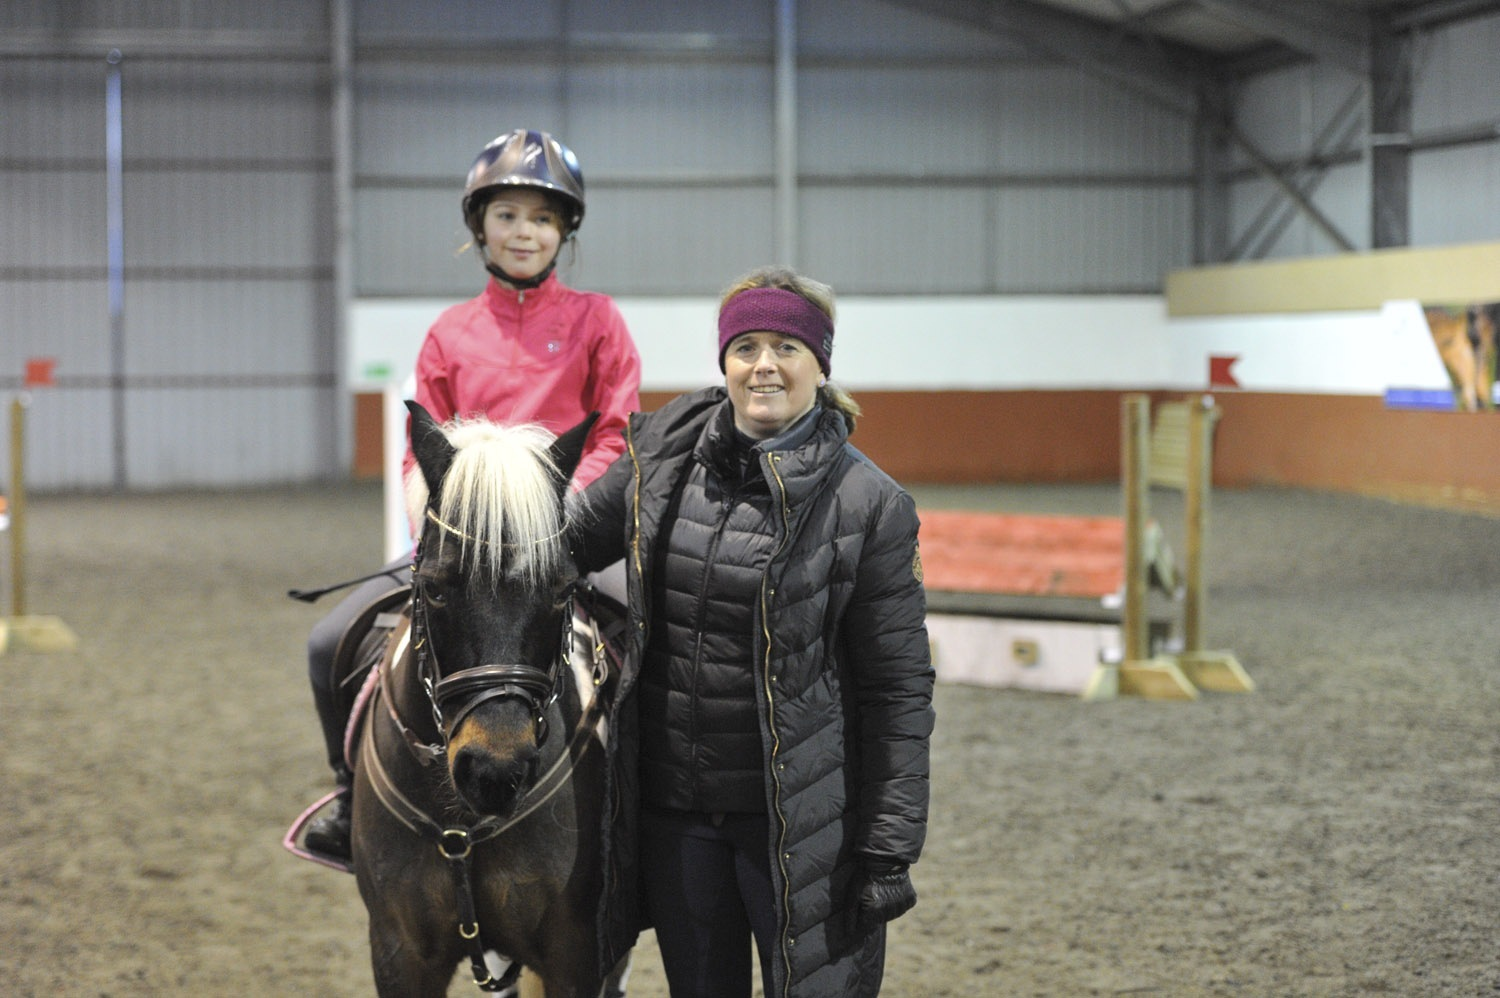 Pippa Funnell, on the right, with Millie Lawson and Dakota who took part in the demonstration.